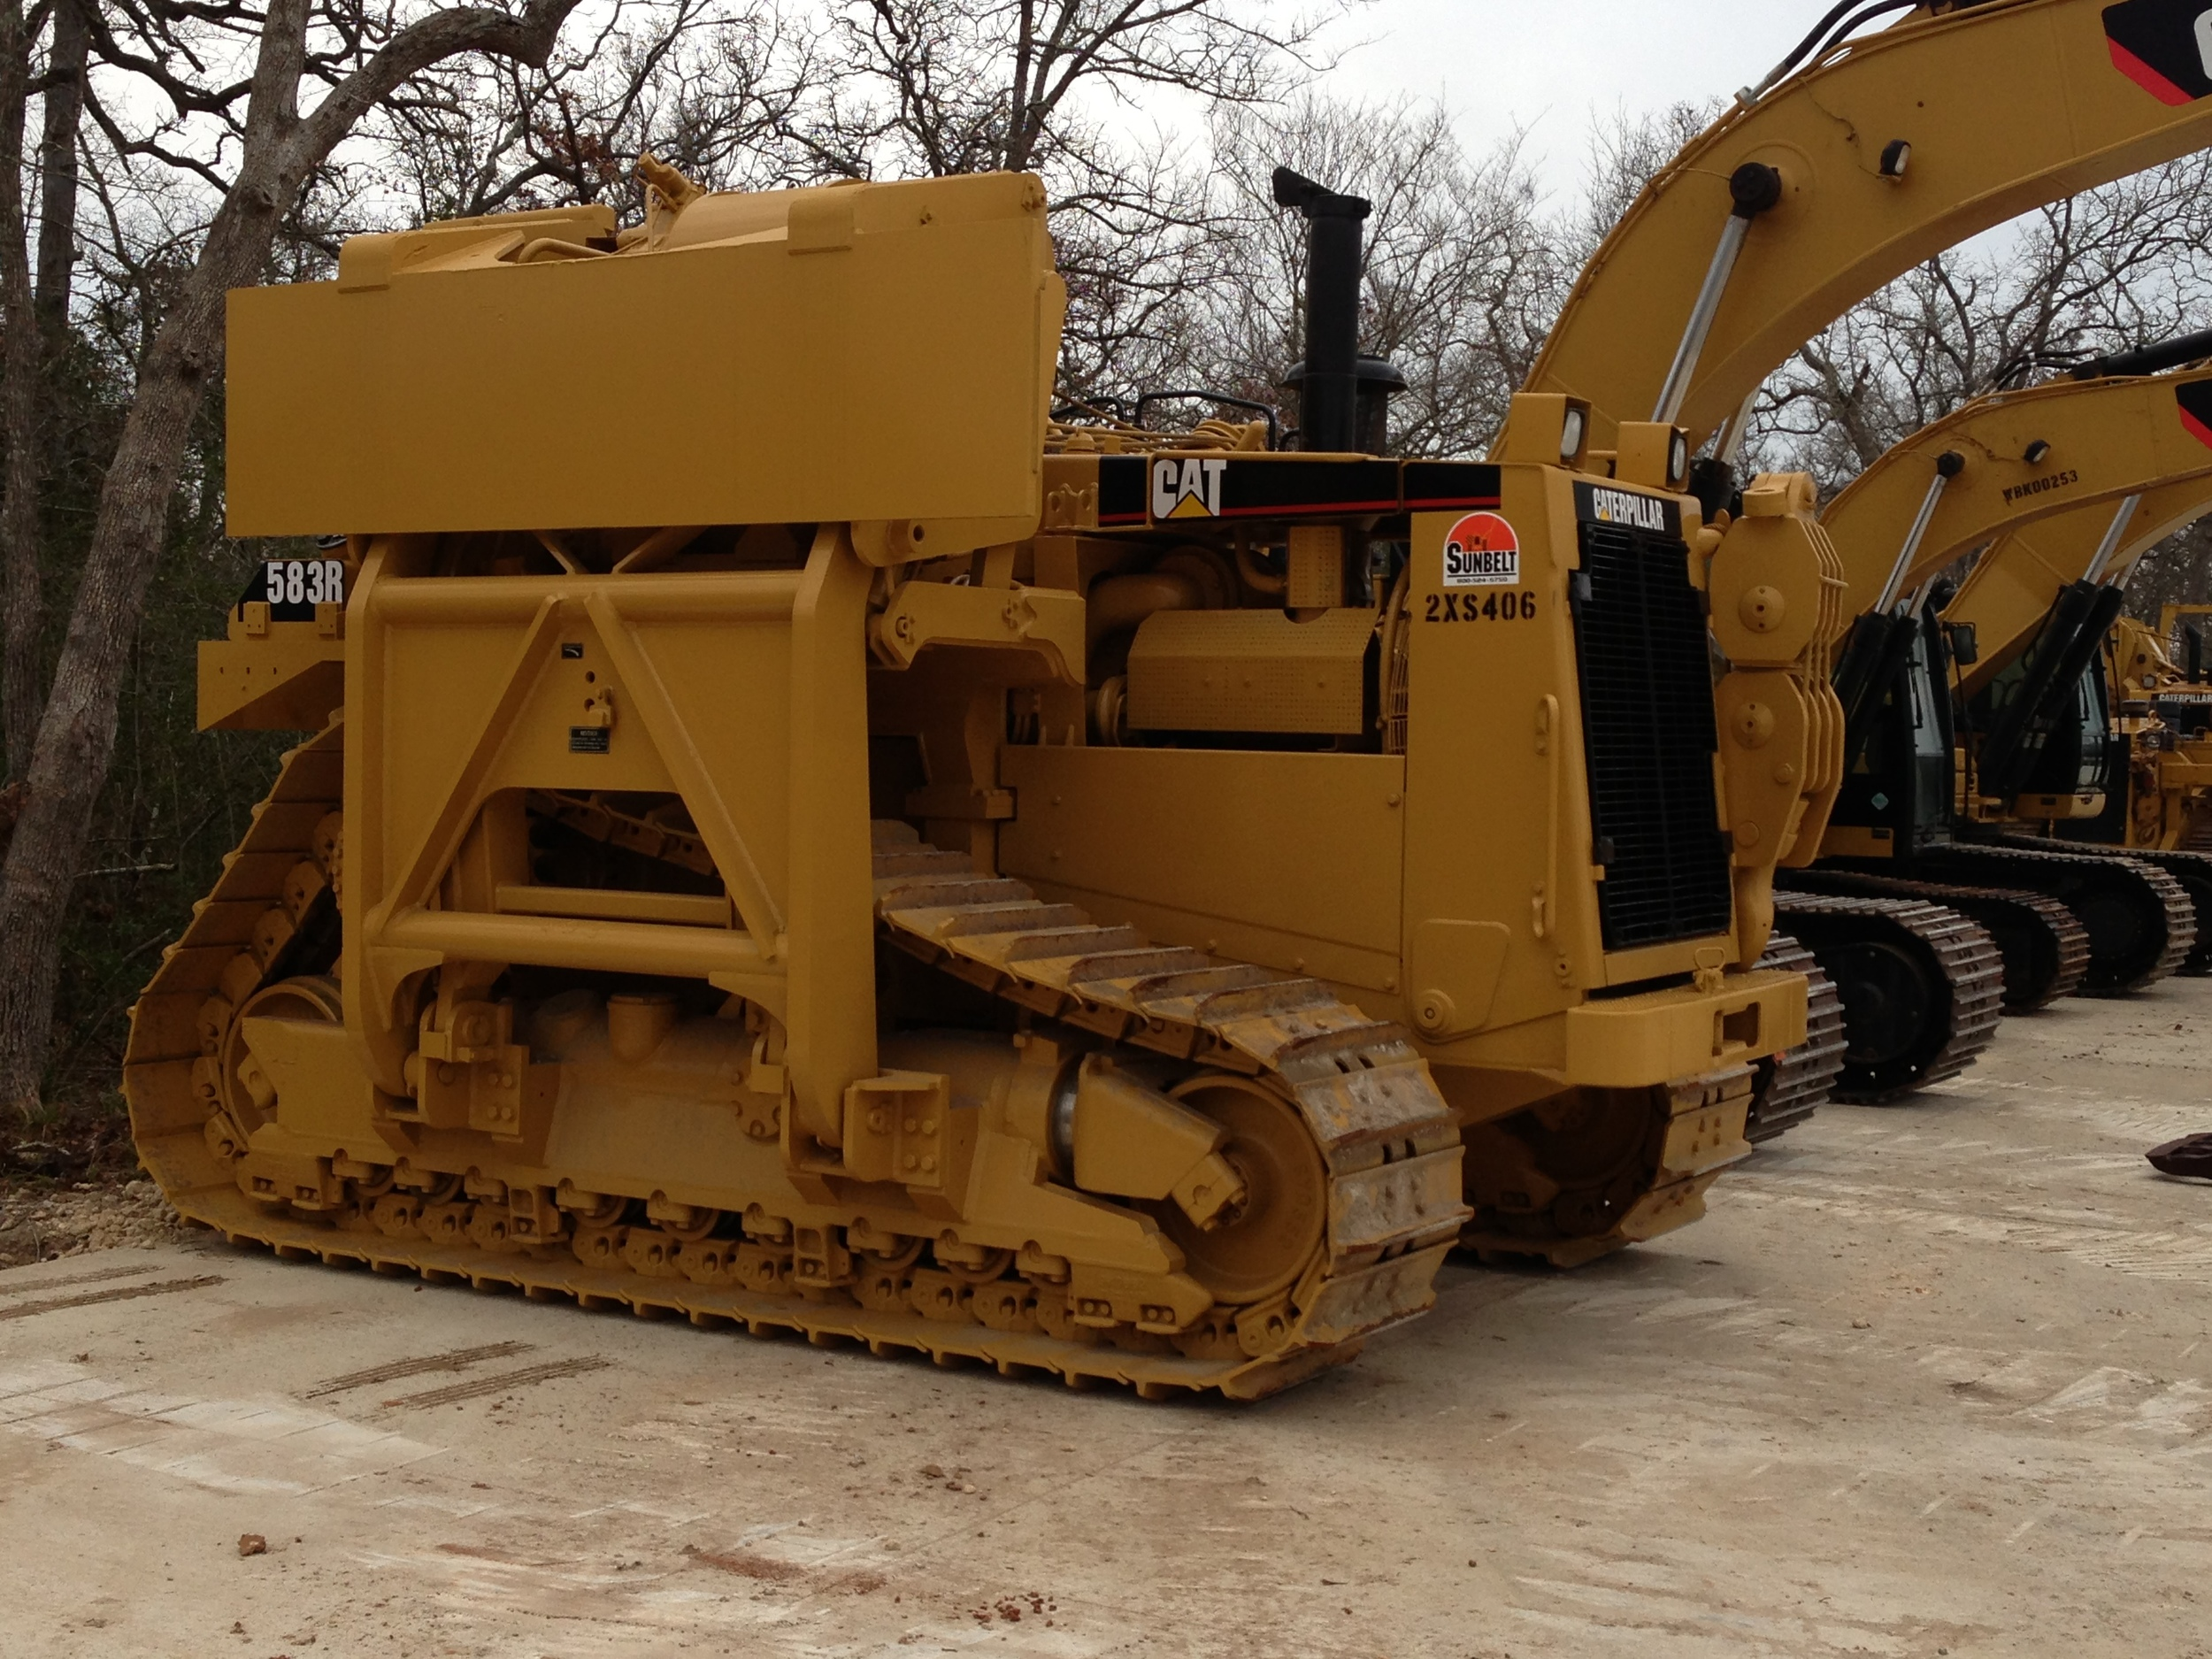 583R Caterpillar Pipelayer